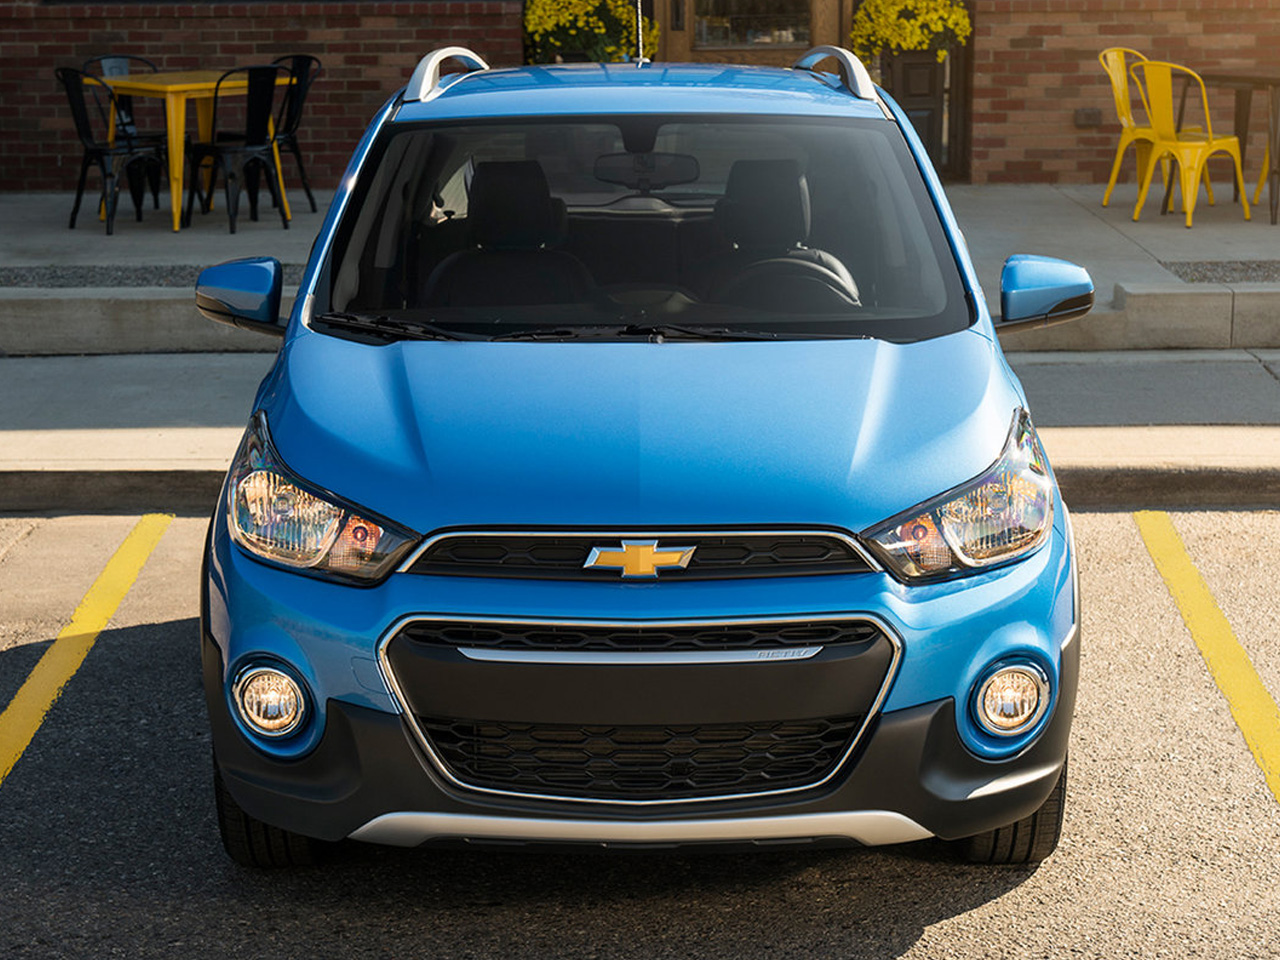 Madera Chevrolet Is A Dealer And New Car Used Spark Exterior Overview The 2018